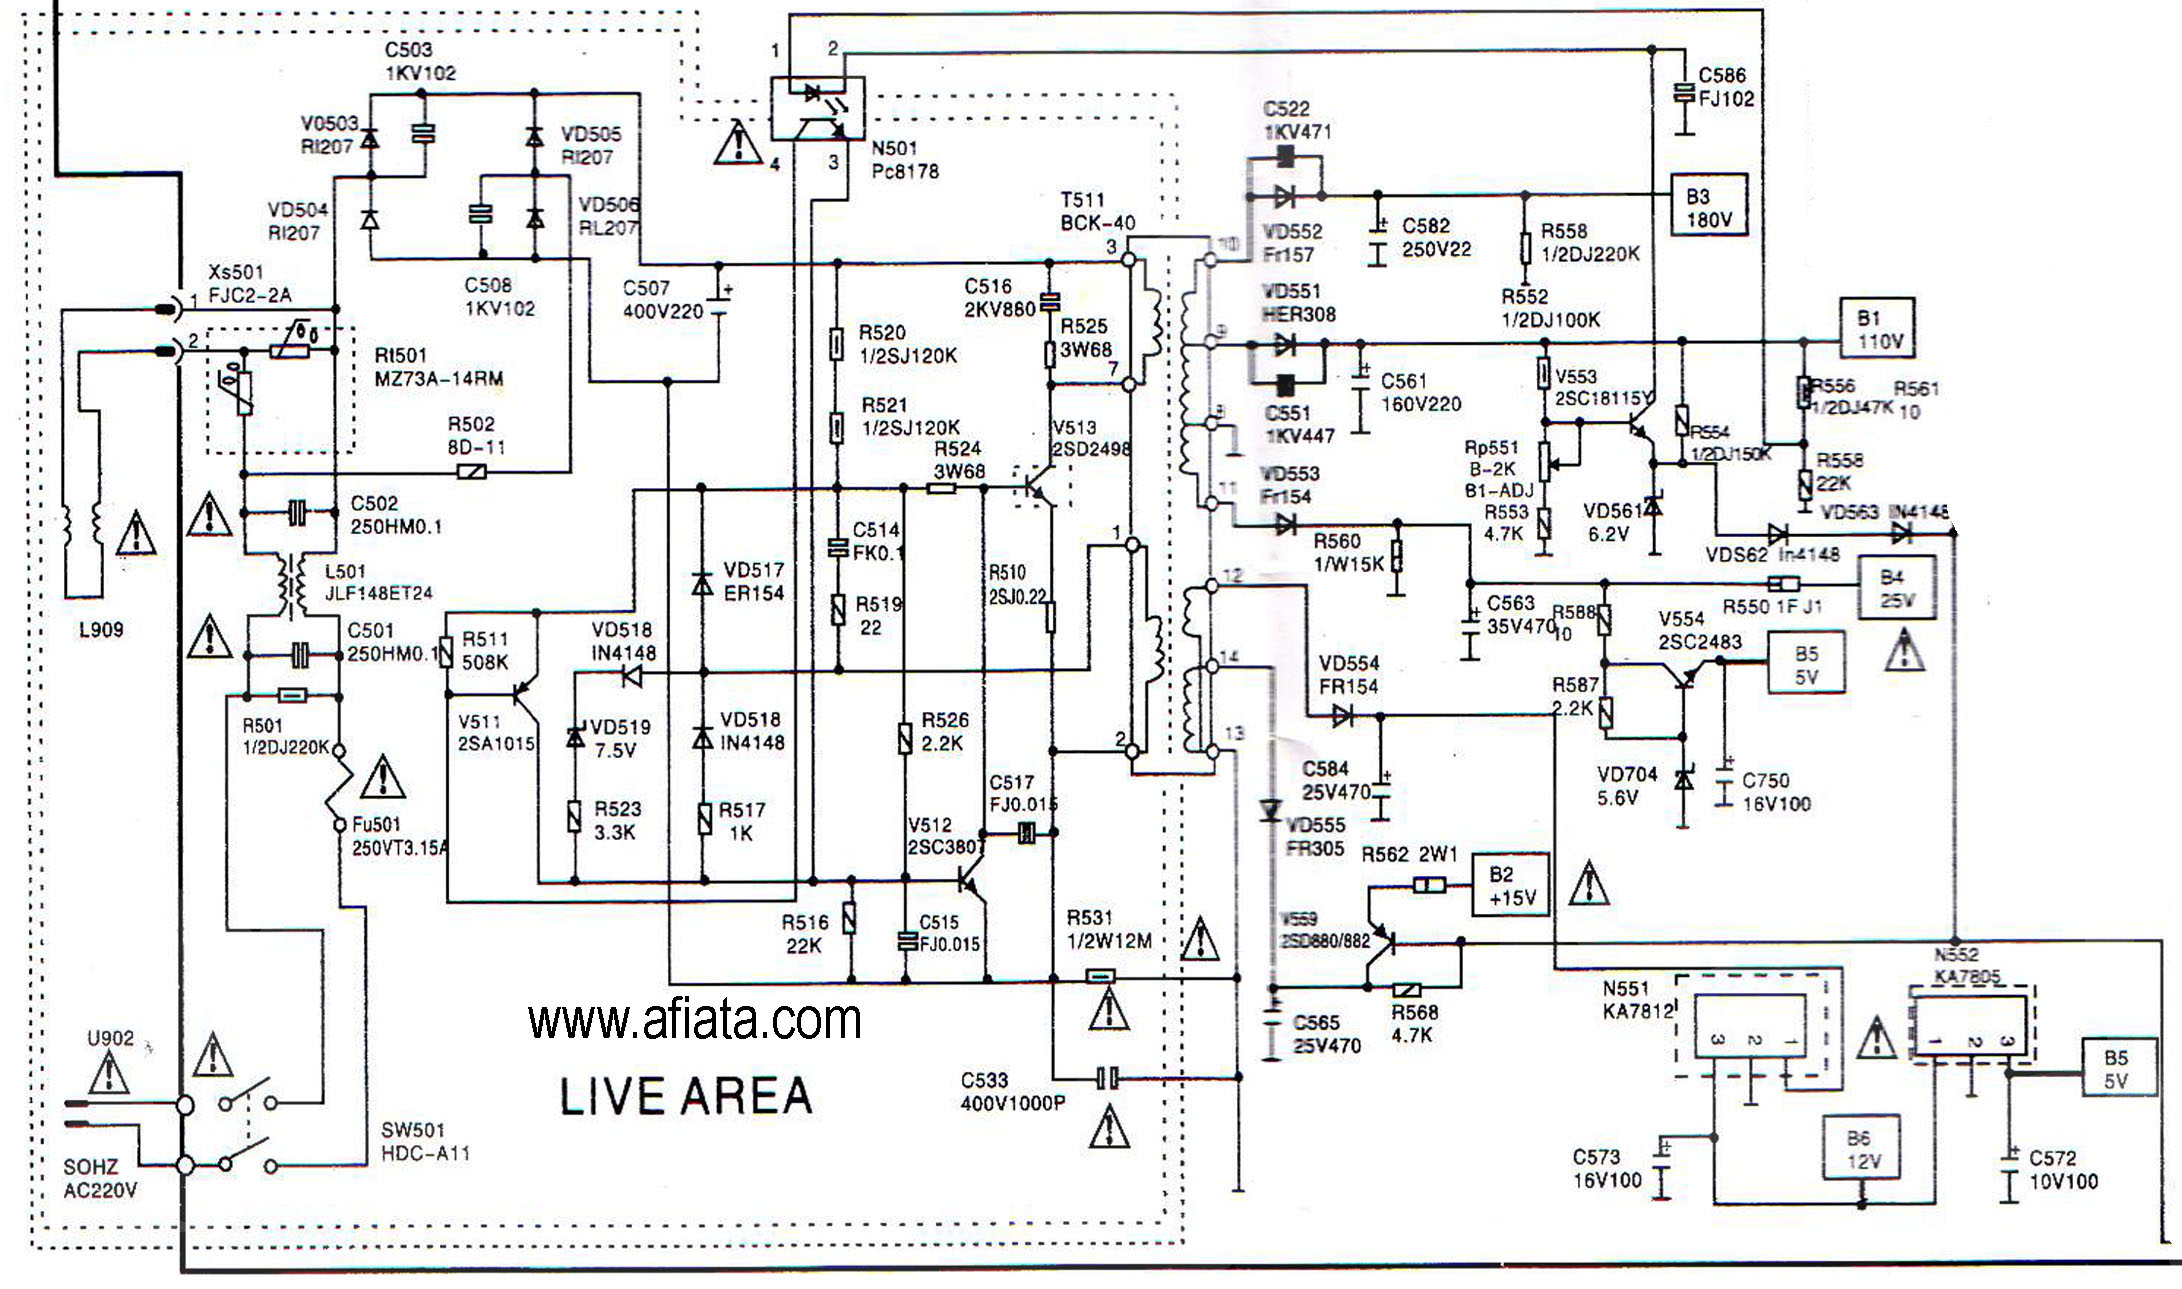 12 Volt Wiring Diagram For 1966 Airstream besides Audi Q7  lifier Wiring Diagram moreover Twin Diesel Battery Wiring Diagram in addition 2004 Chevy Silverado Radio Wiring Diagram furthermore 2 Speaker 8 Ohm Wiring Diagram To Diagrams. on car audio wiring diagrams